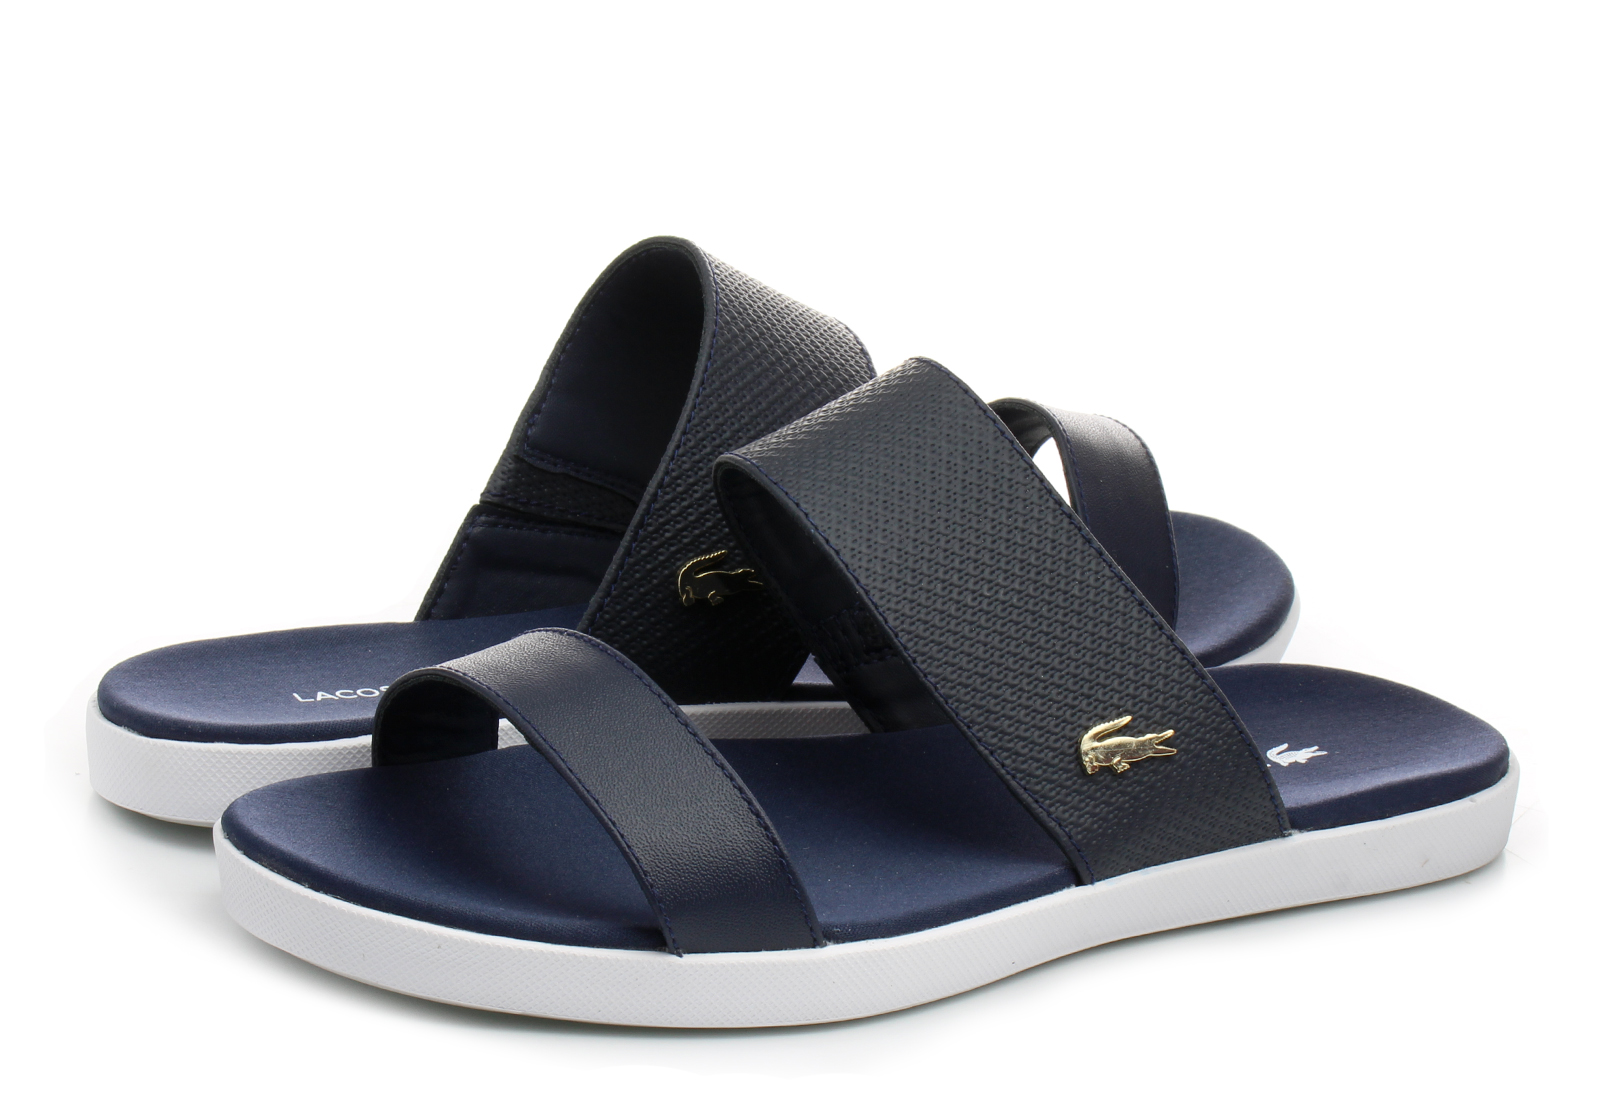 3330e149b9e6ab Lacoste Sandals - Natoy - 181caw0045-8t5 - Online shop for sneakers ...